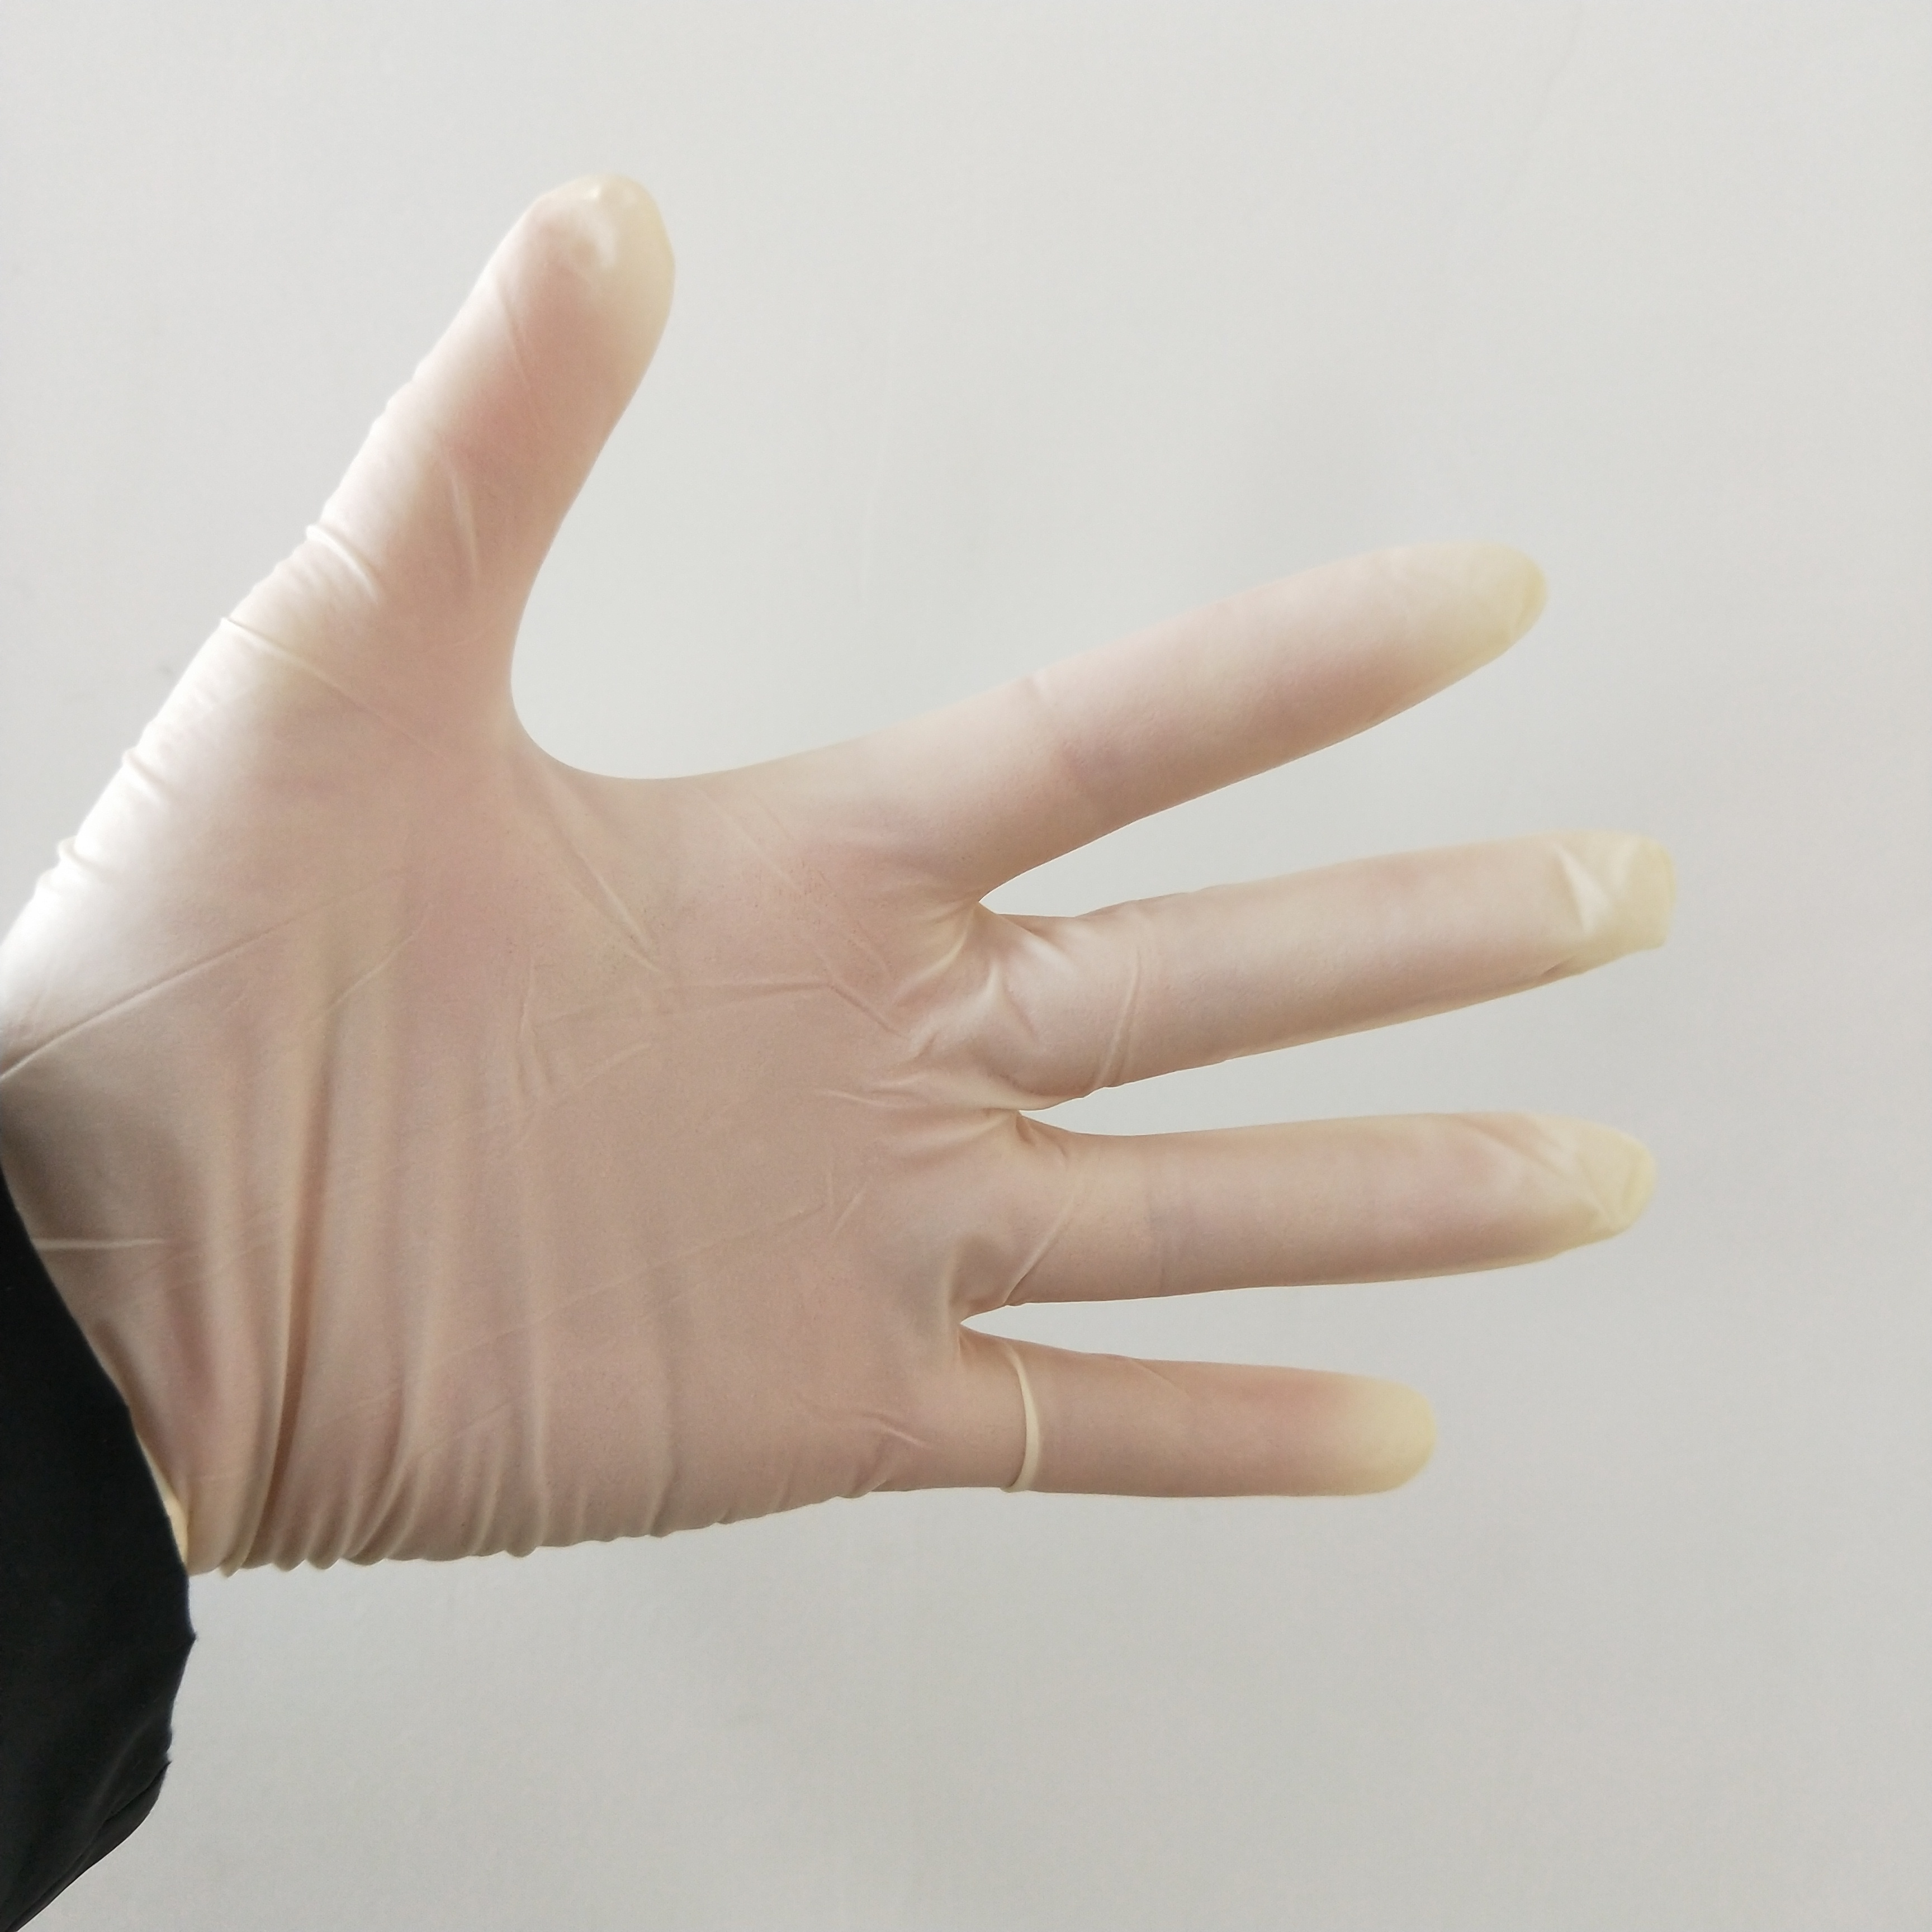 Good quality Disposable Latex/Nitrile Medical Examination Gloves